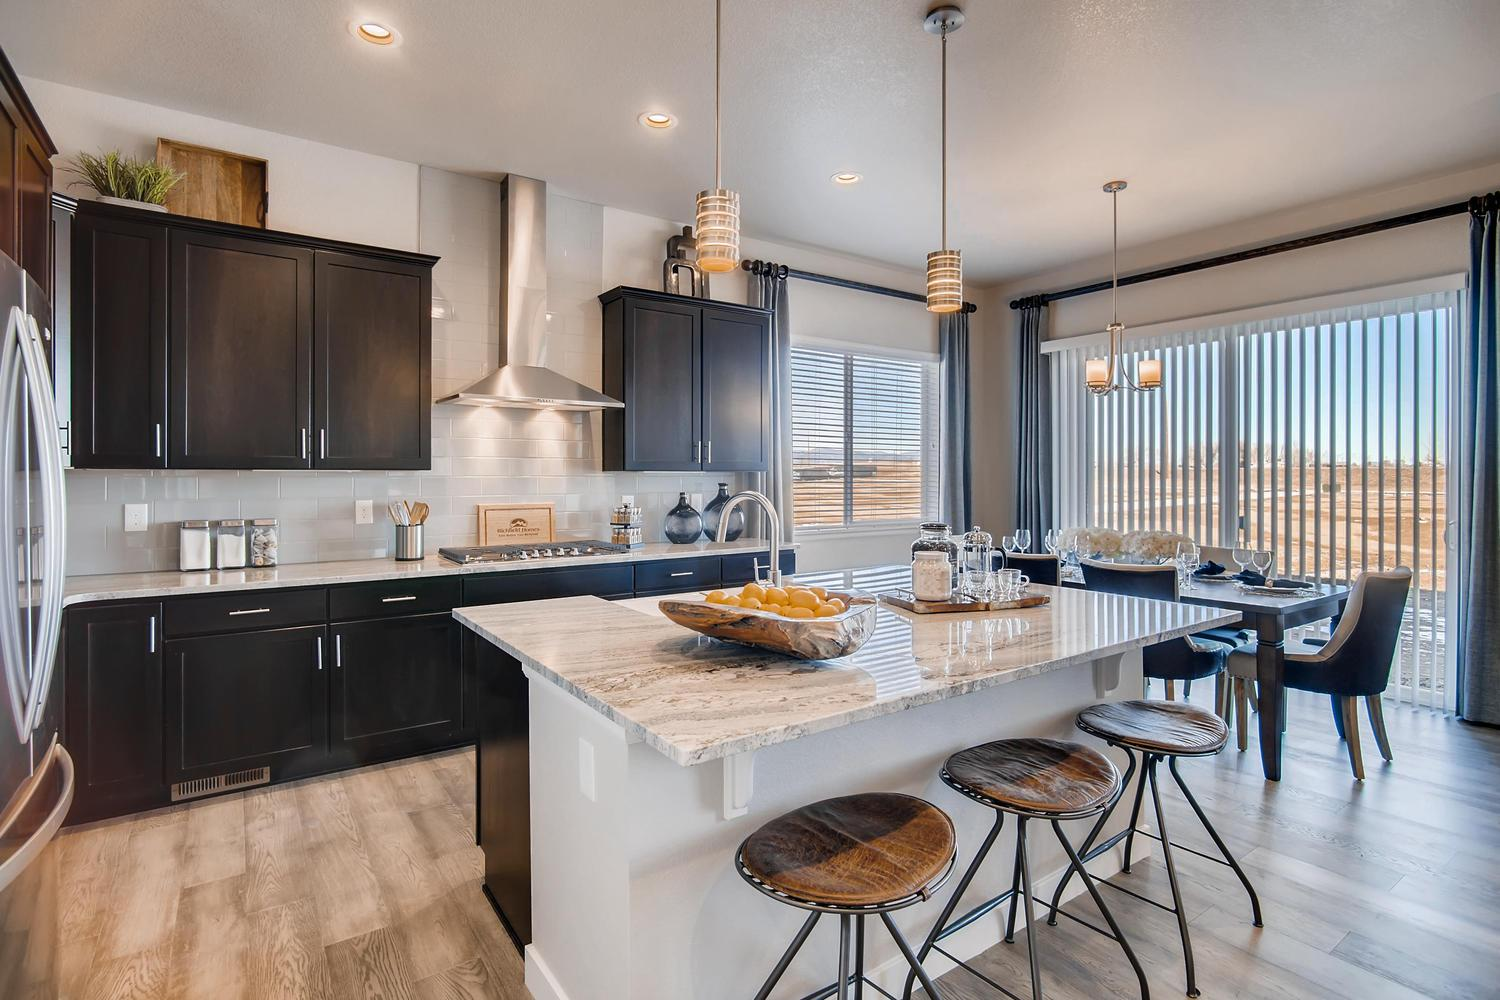 Kitchen featured in the Minturn - Promontory at Todd Creek By RichfieldHomes in Denver, CO